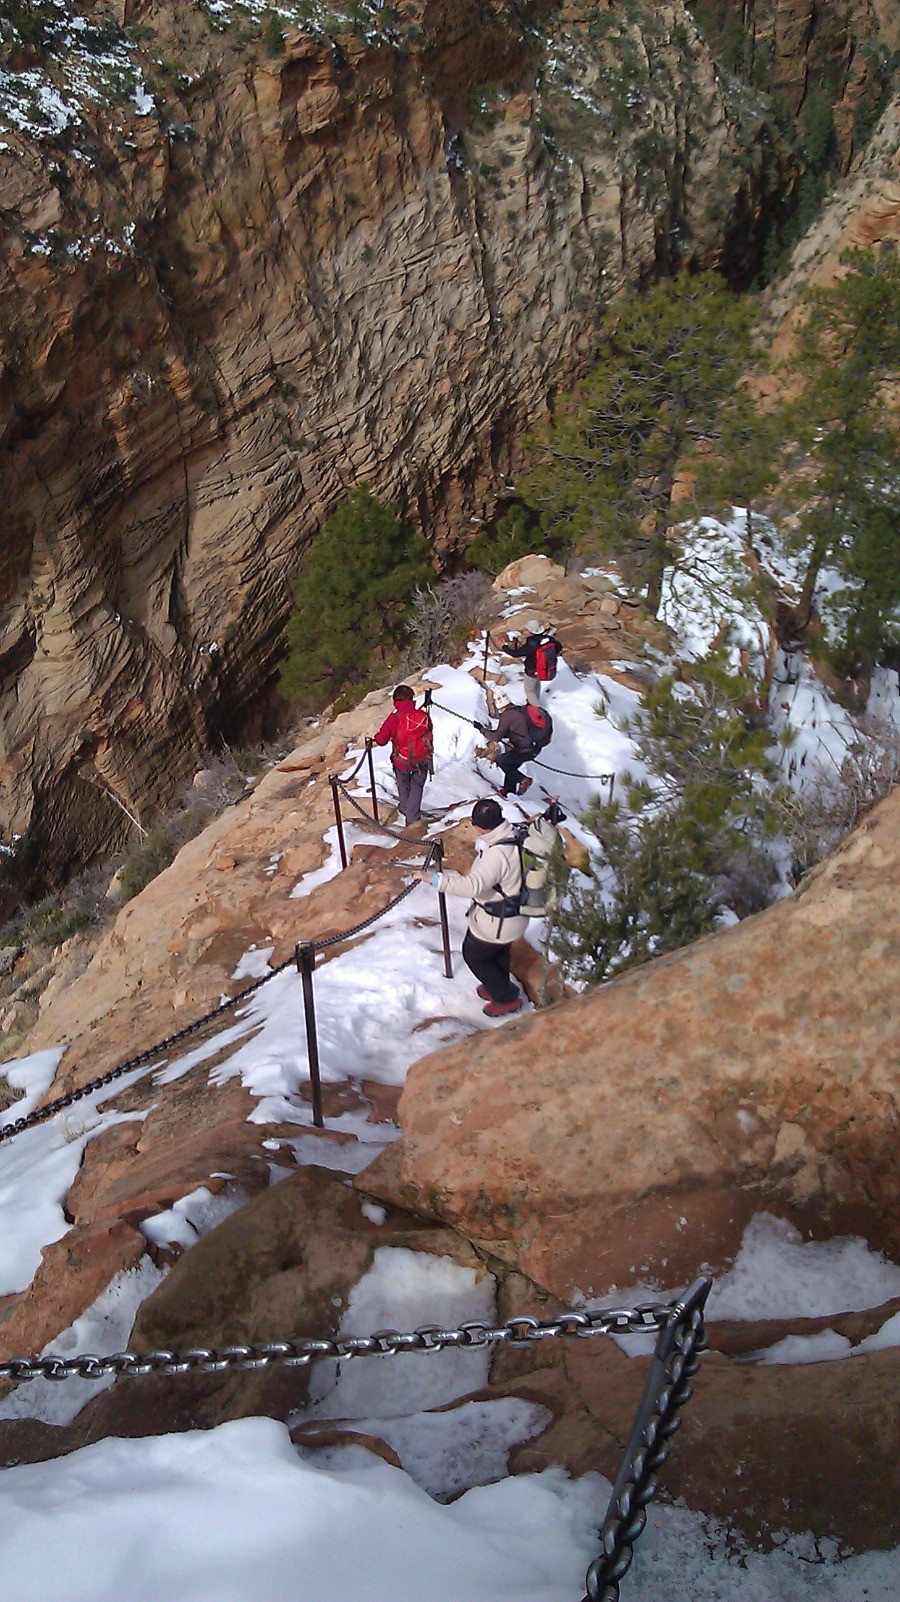 Four people descending steep and snowy red rock slope